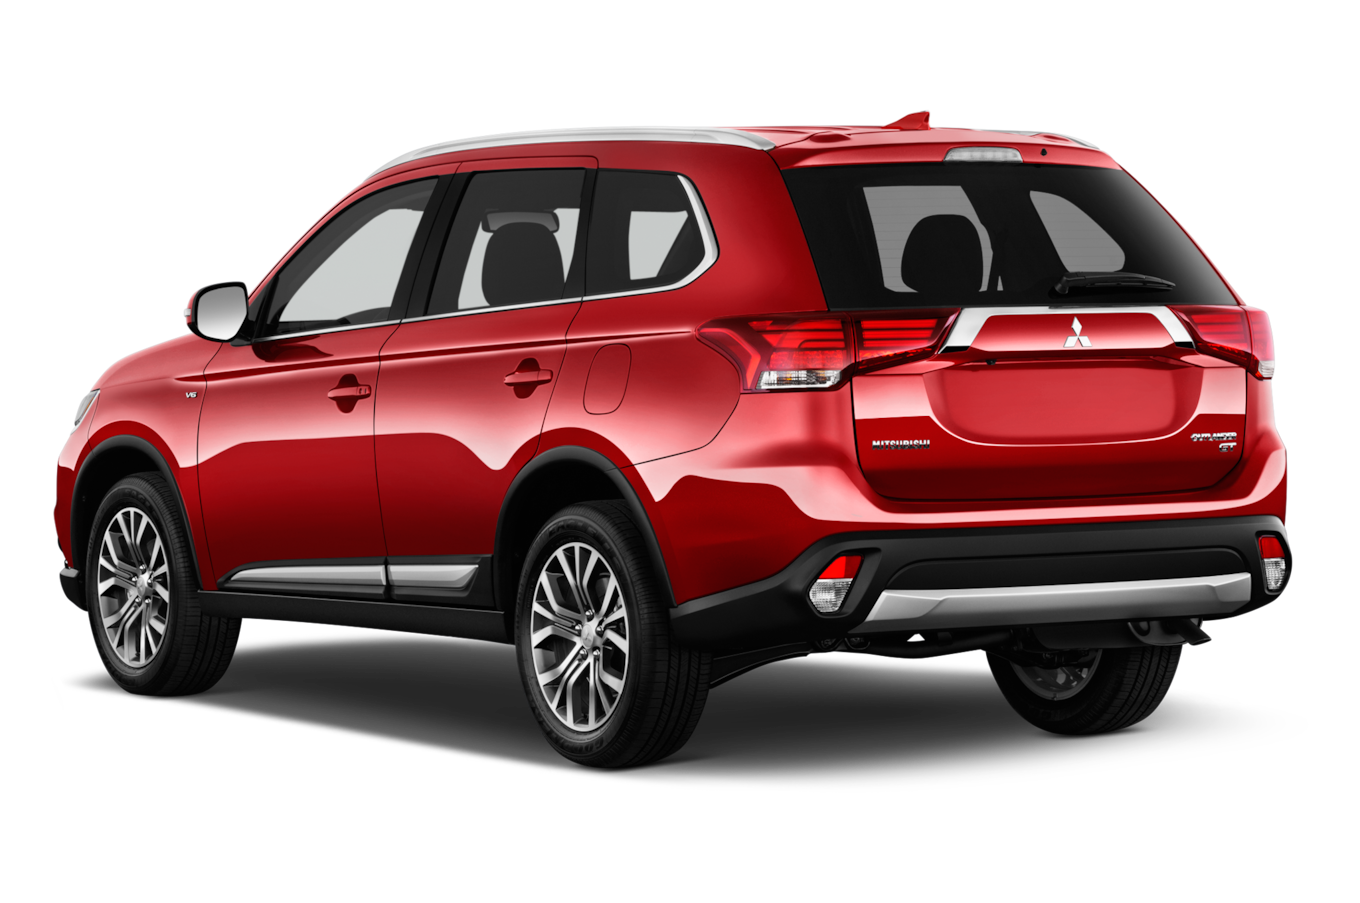 hight resolution of 2018 mitsubishi outlander reviews and rating motor trend 13 25